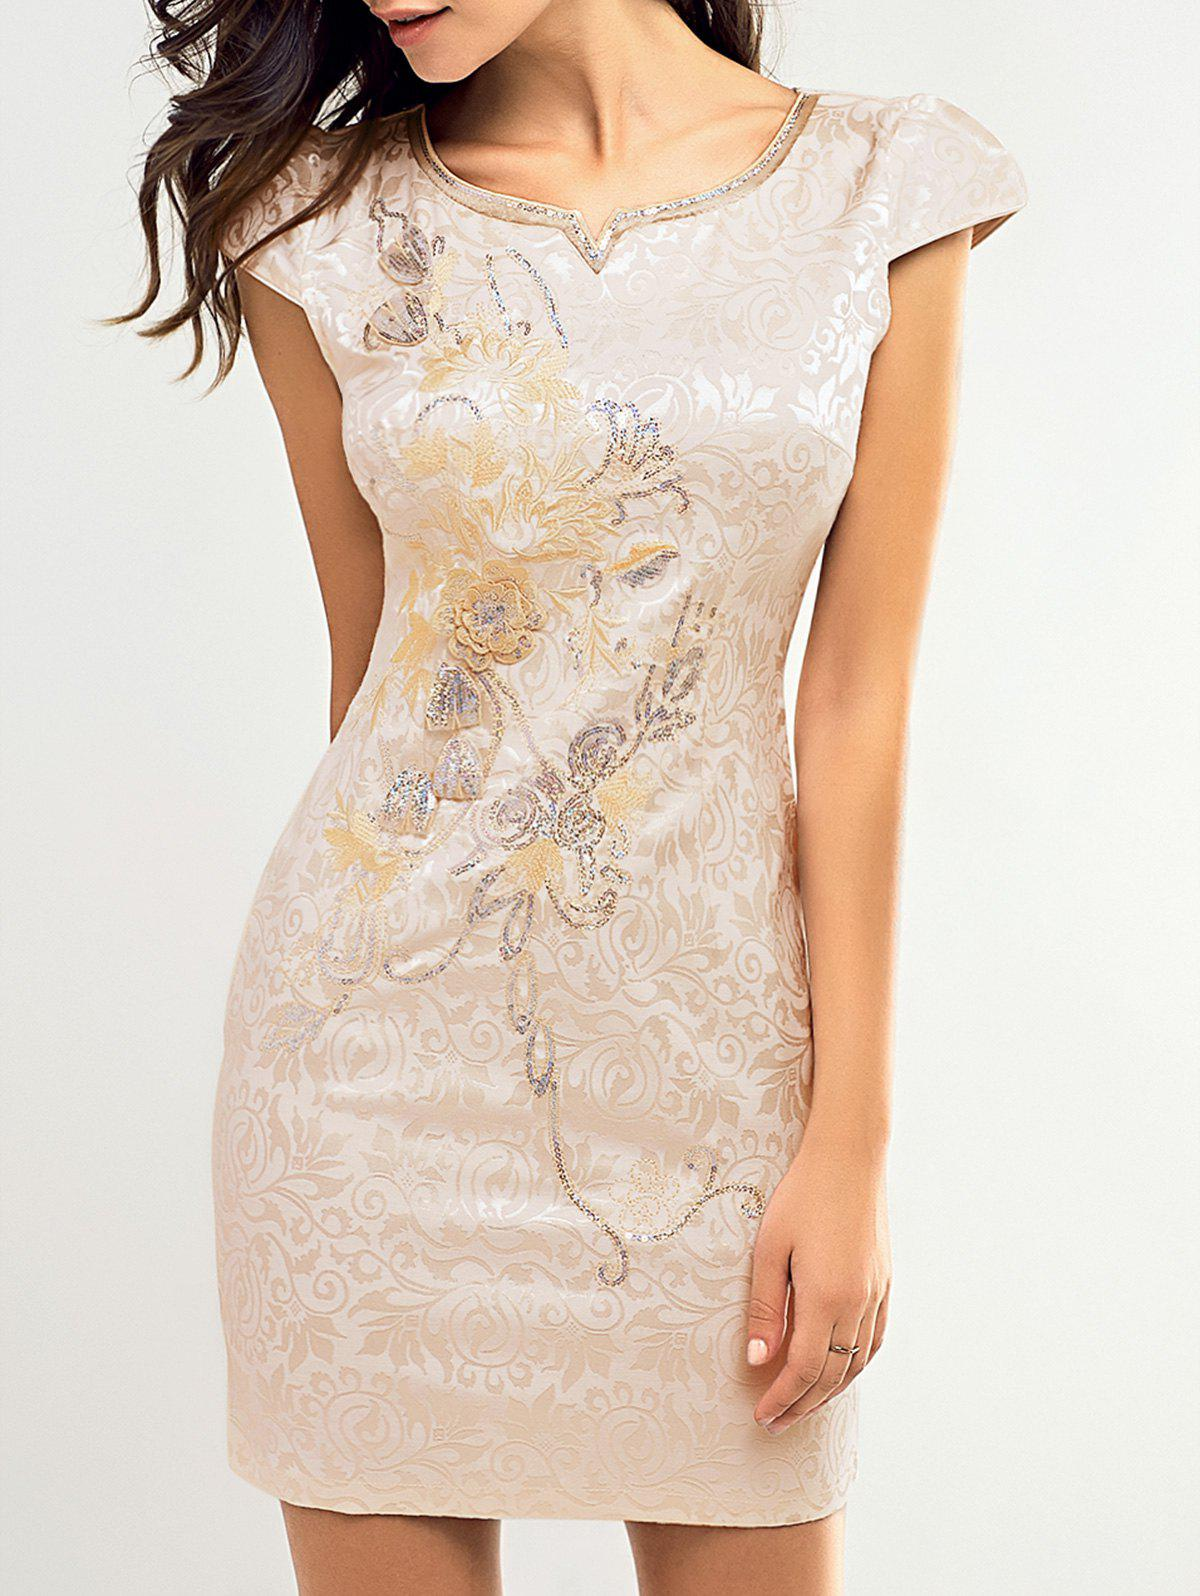 Vintage Floral Embroidered Sequined Dress For Women - BEIGE 2XL